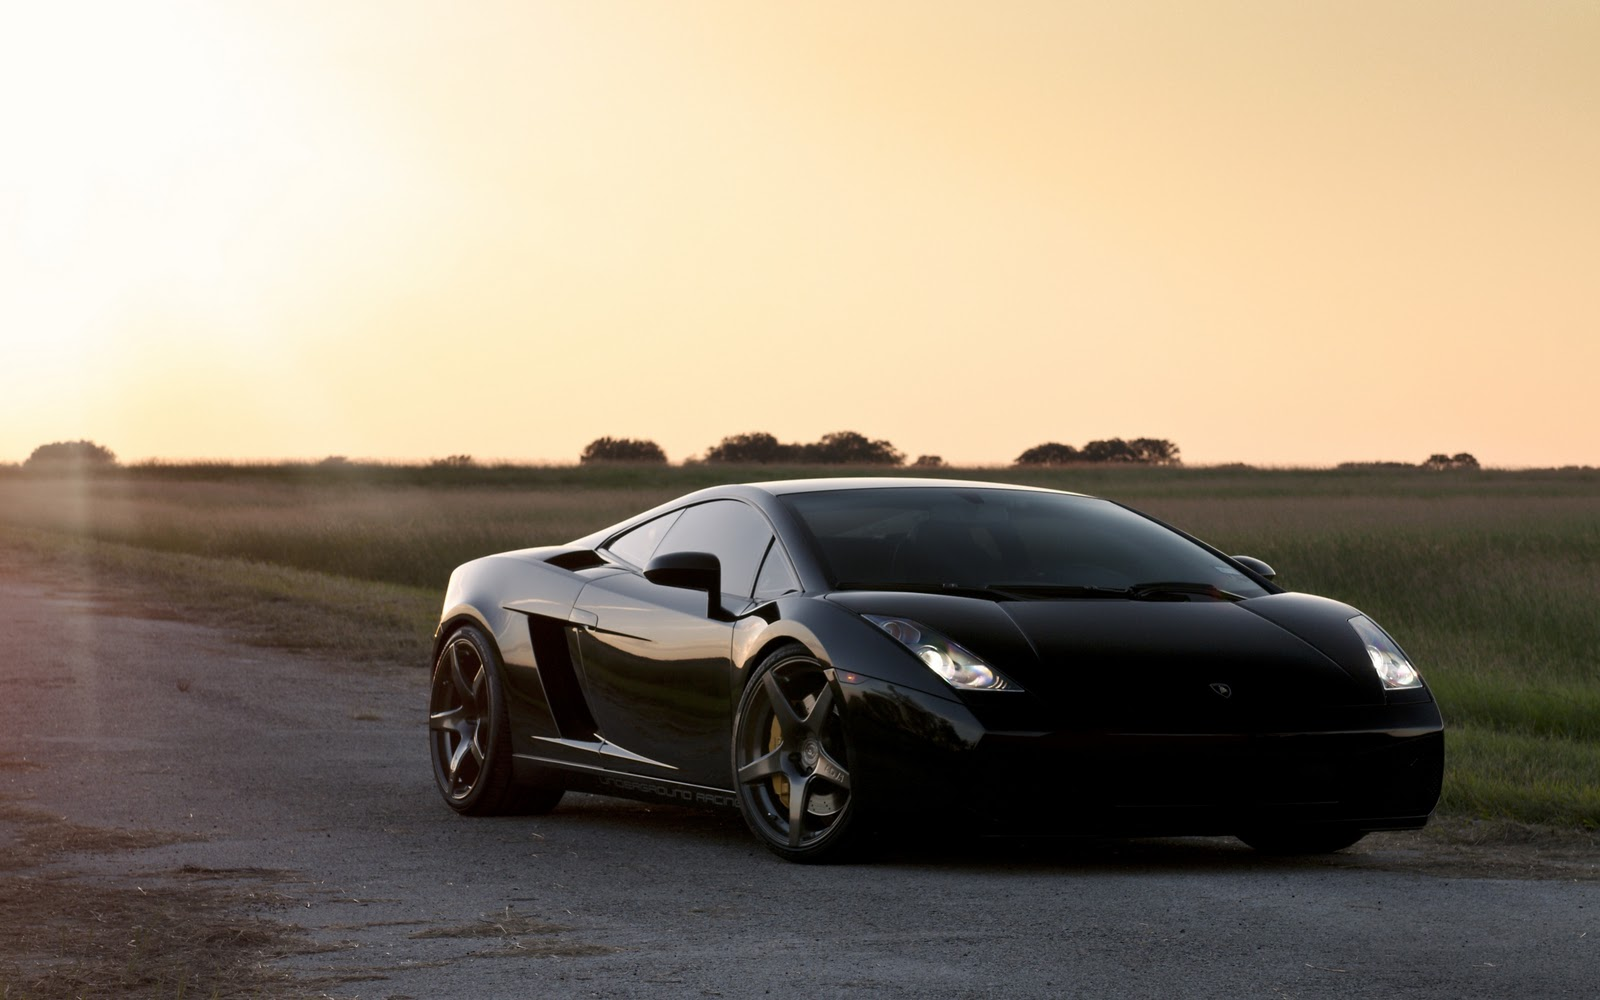 Vecars.blogspot.com: Cool Black Lamborghini Gallardo HD